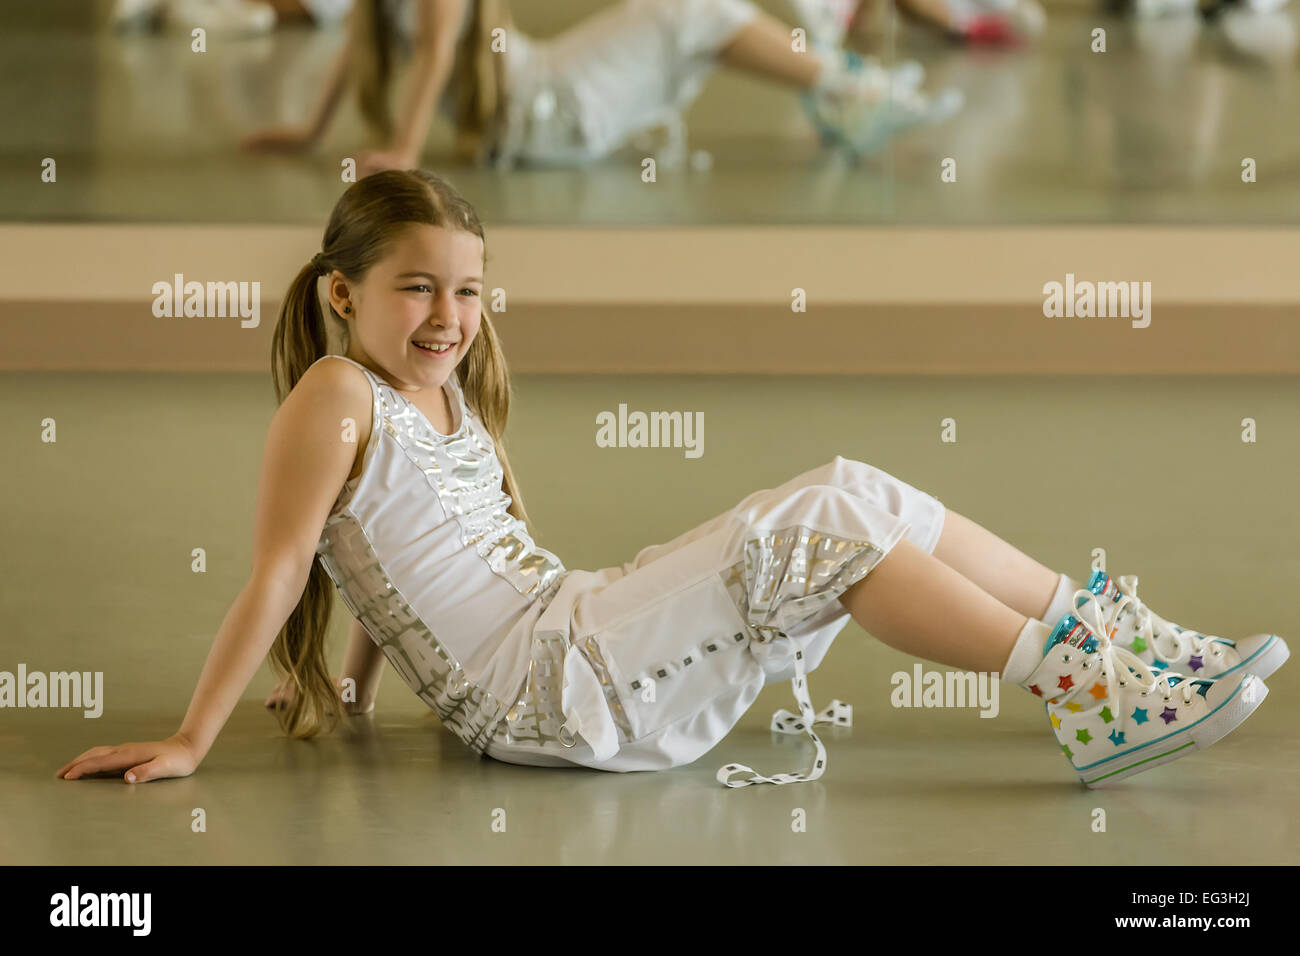 Eight year old girl resting during Hip-hop dance lesson class - Stock Image